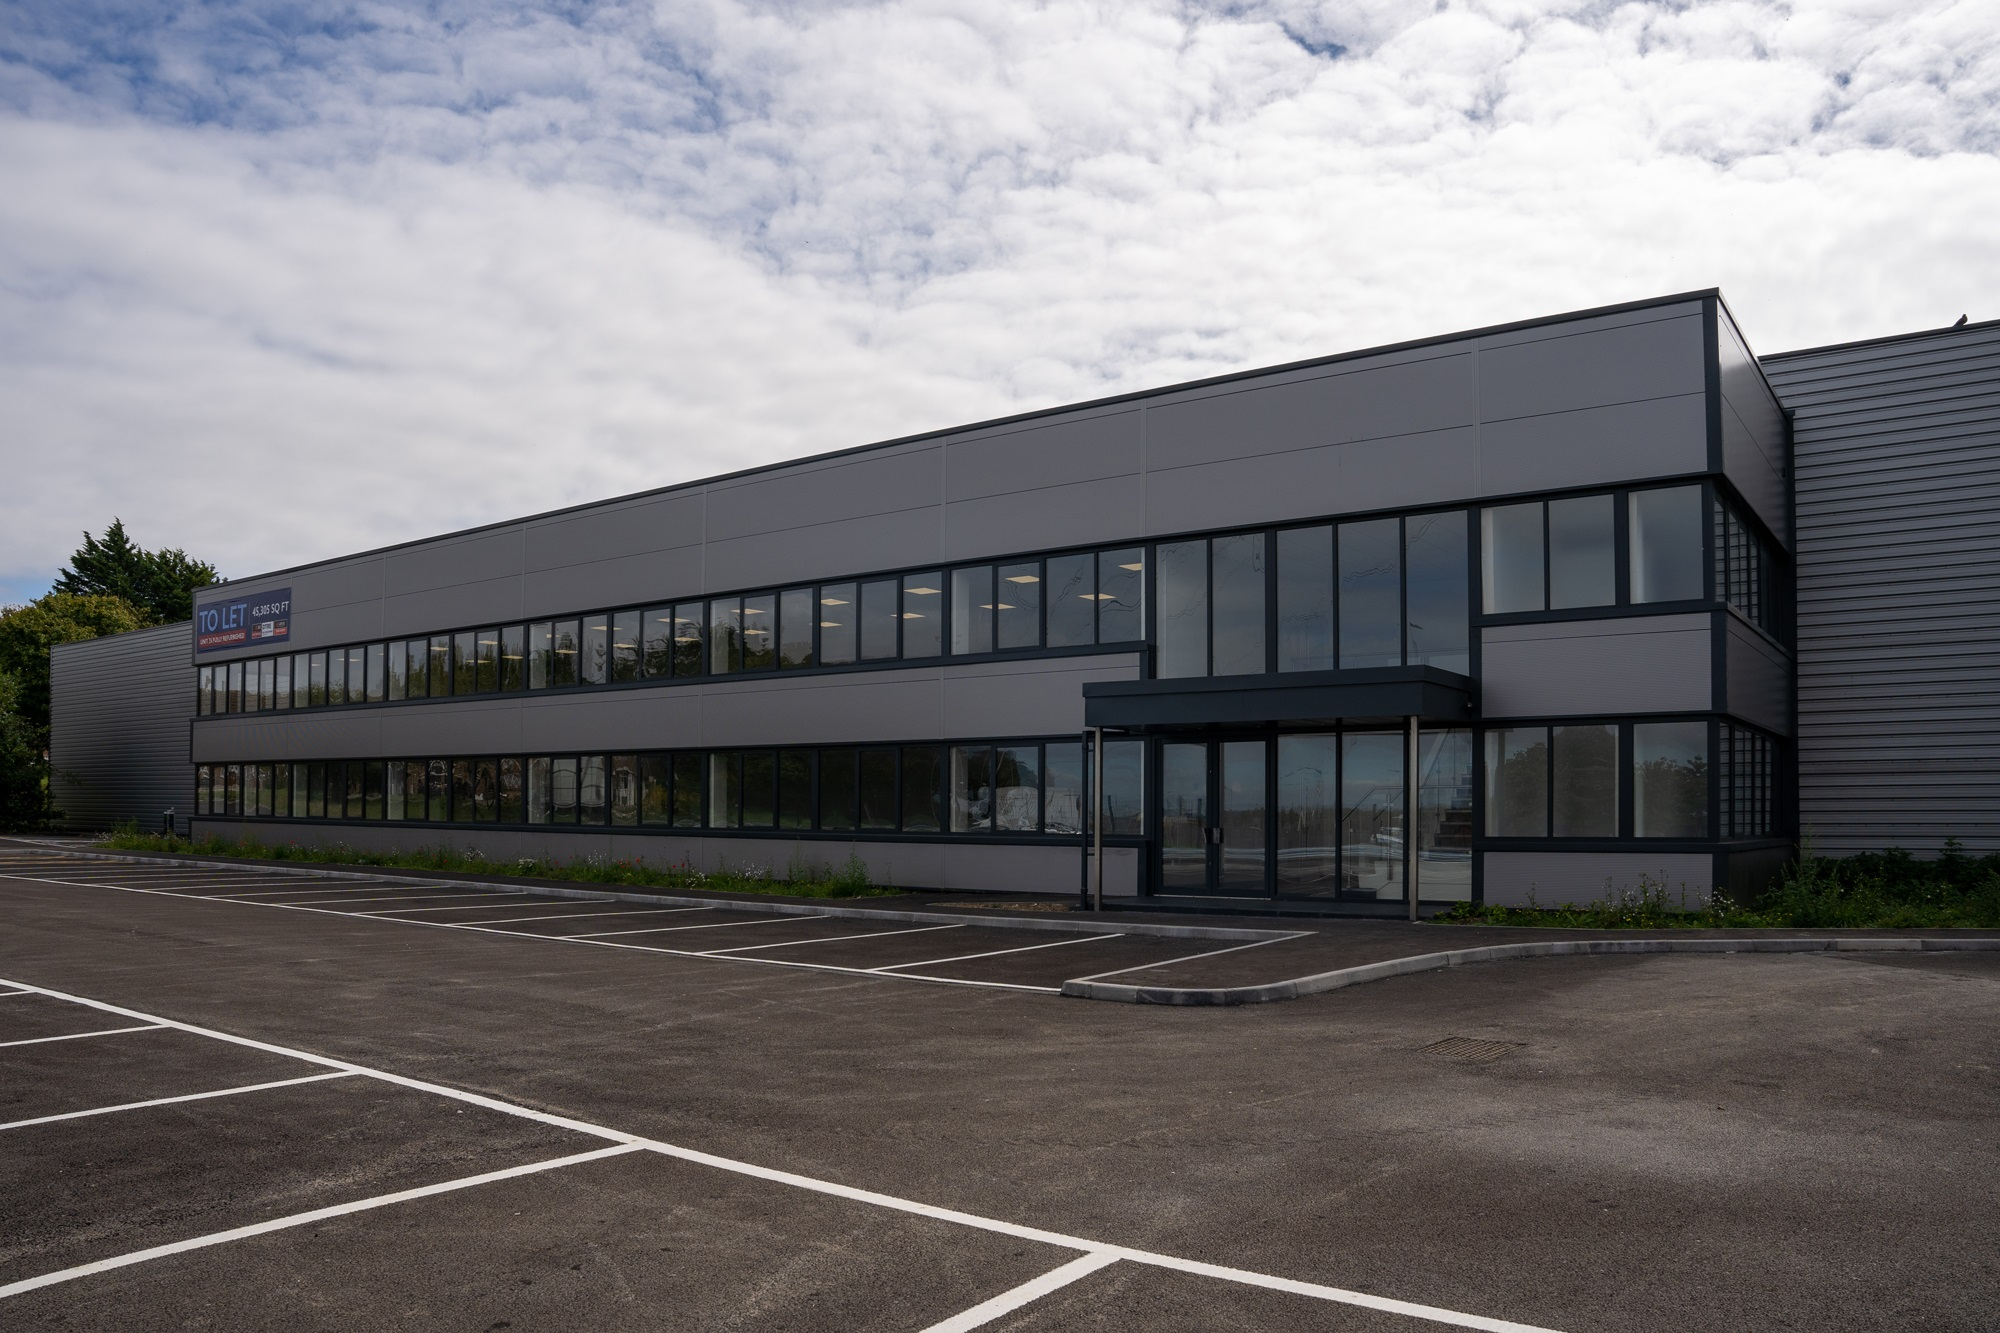 exterior image of warehouse entrance